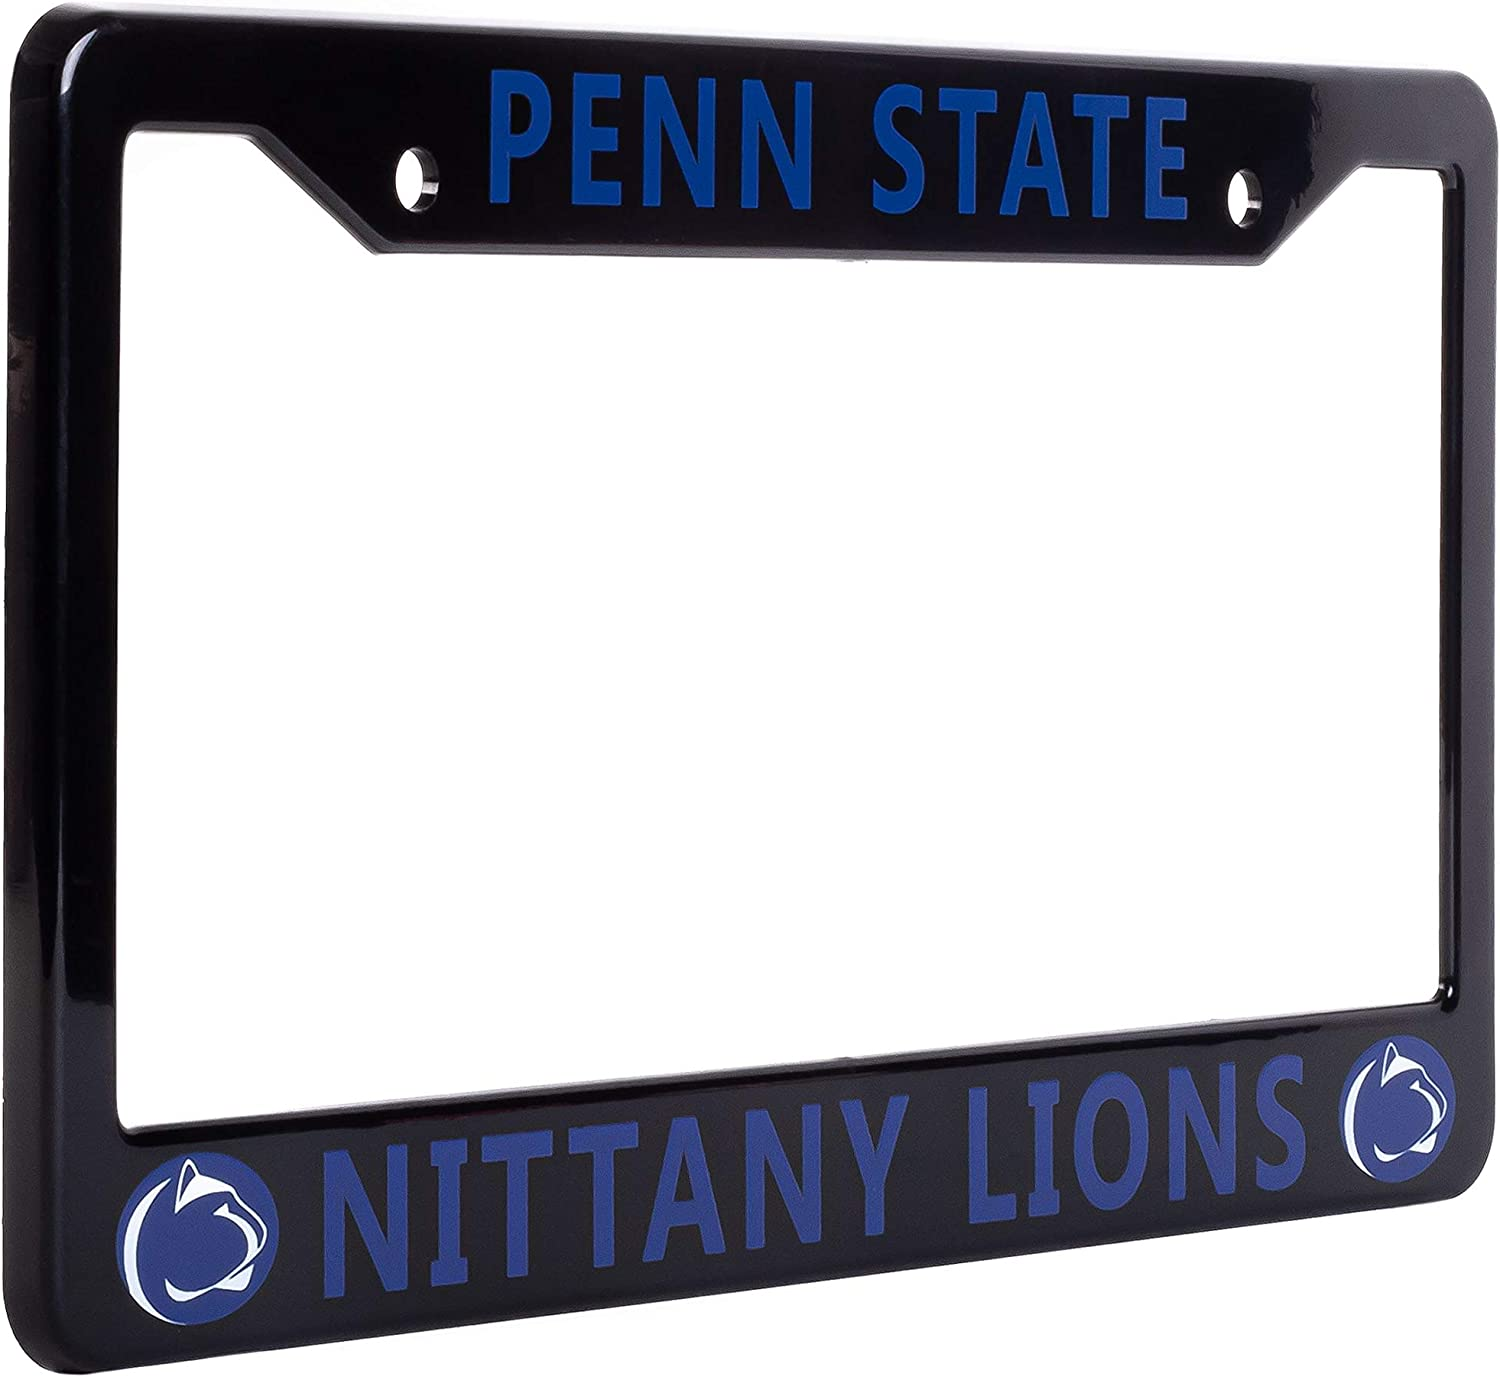 "Ideal Gift for Sports Fans /& Supporters NCAA Car Accessory Black EliteAuto3K Penn State Nittany Lions License Plate Frame Cover 12.25/"" x 6.25/"" Slim Design"